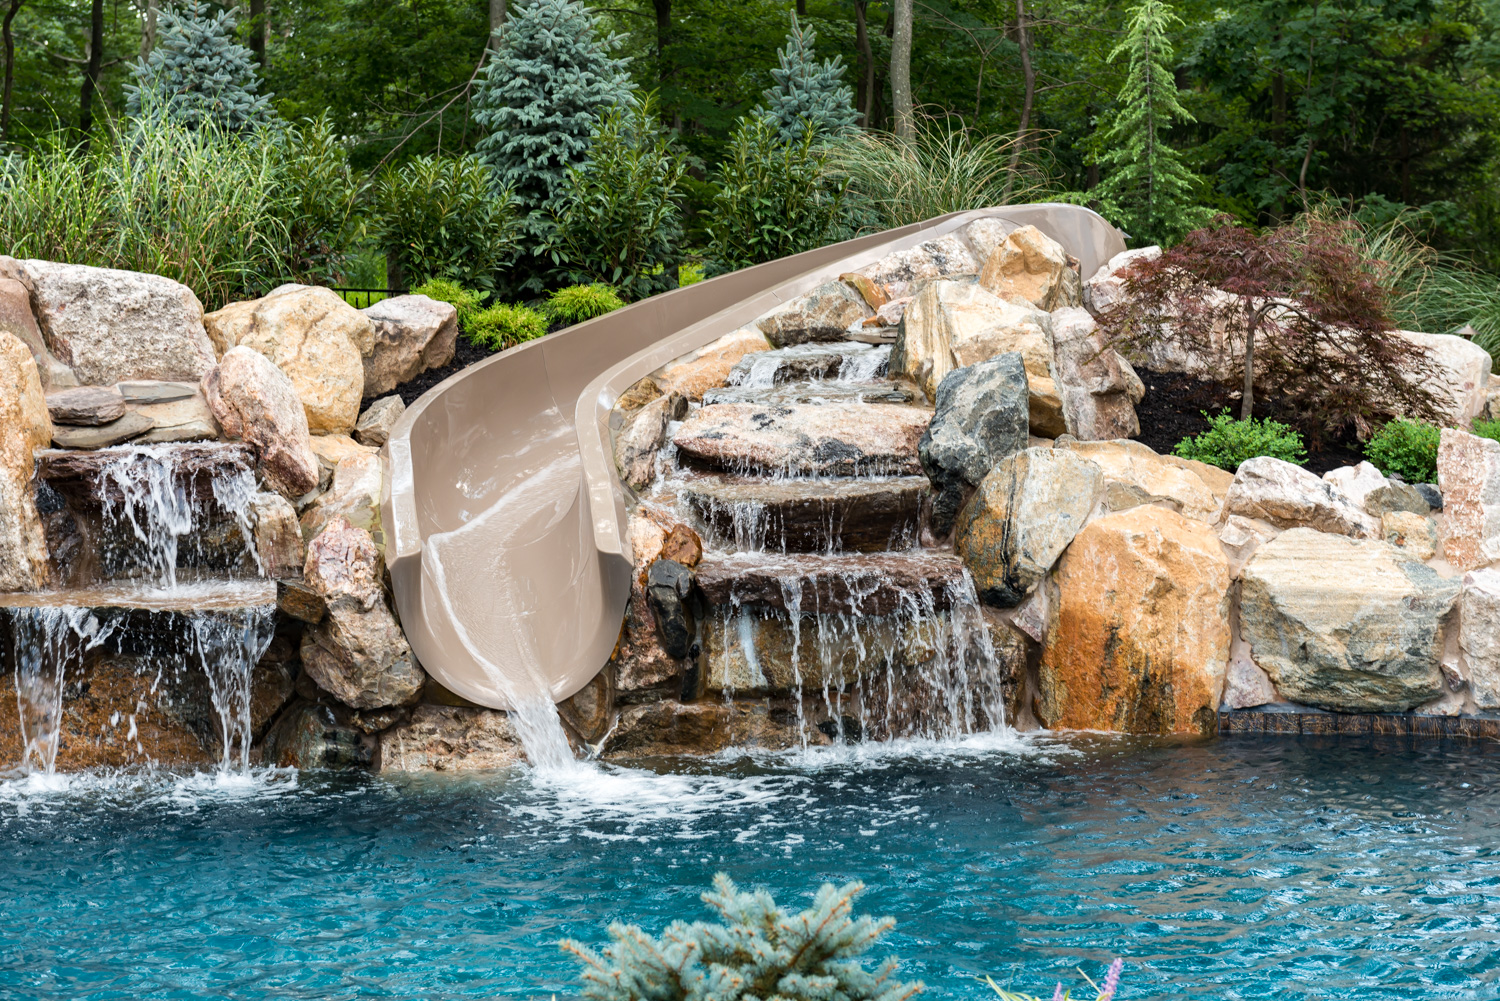 Nj Custom Designed Swimming Pool Slides And Water Features For Residential Nj Properties K C Land Design Construction